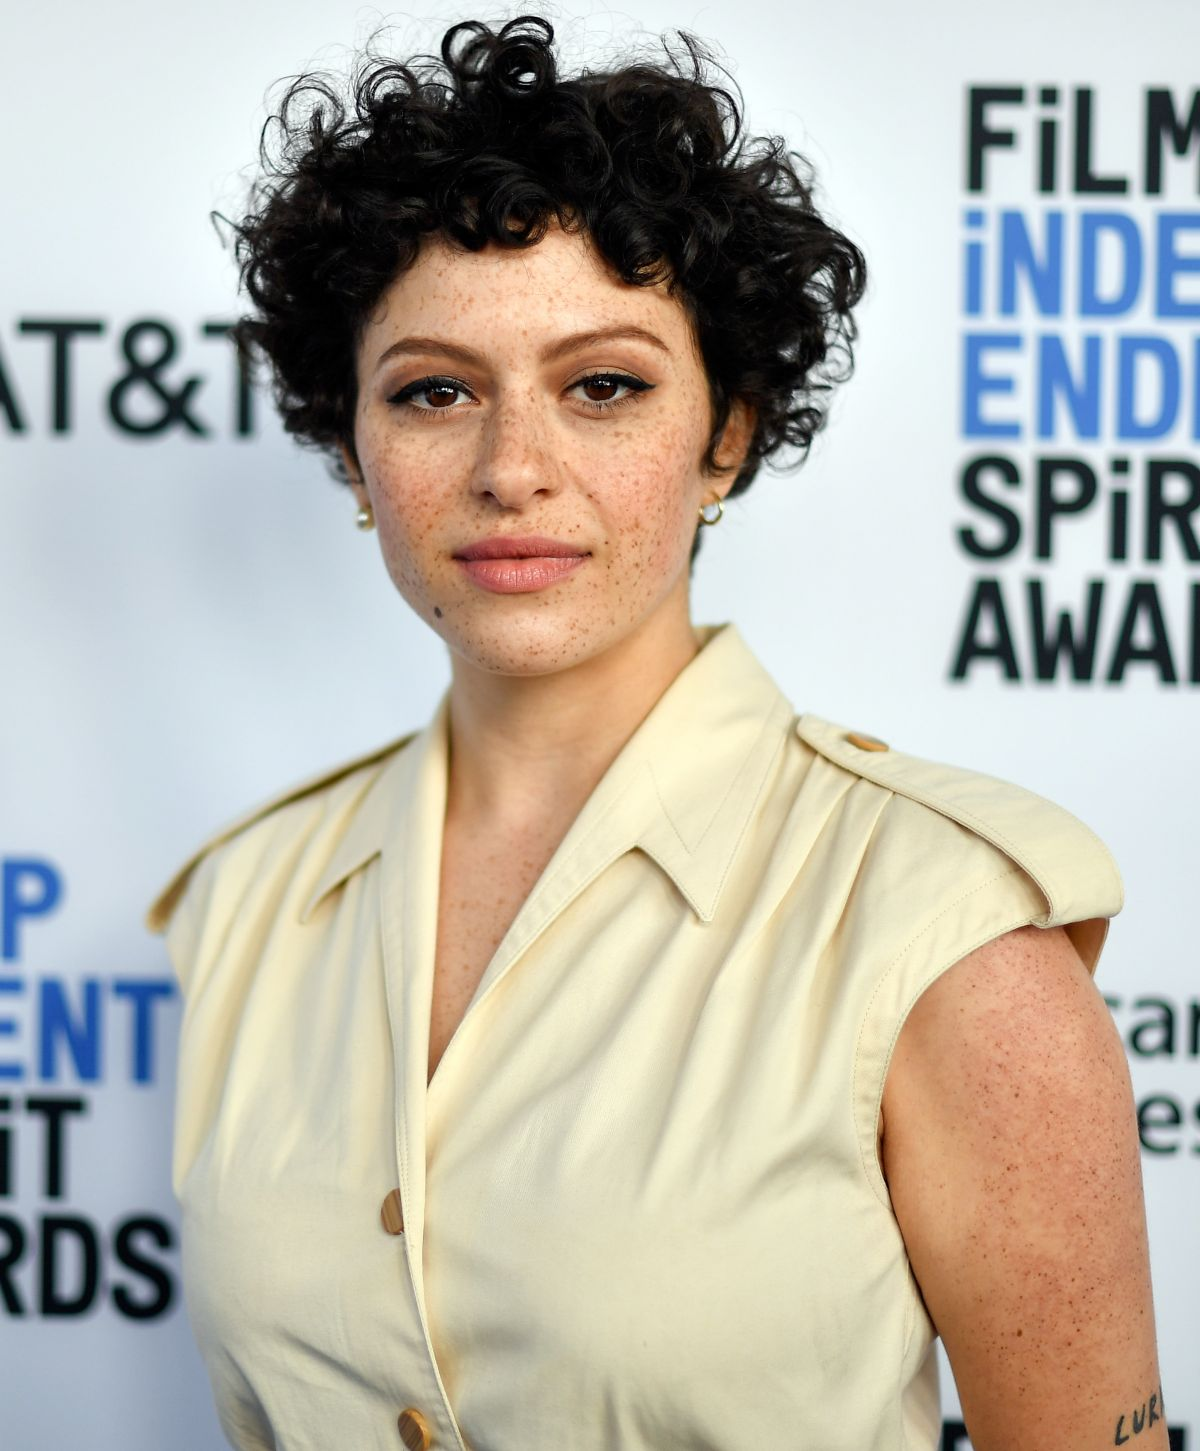 Communication on this topic: Melanie Kinnaman, alia-shawkat/